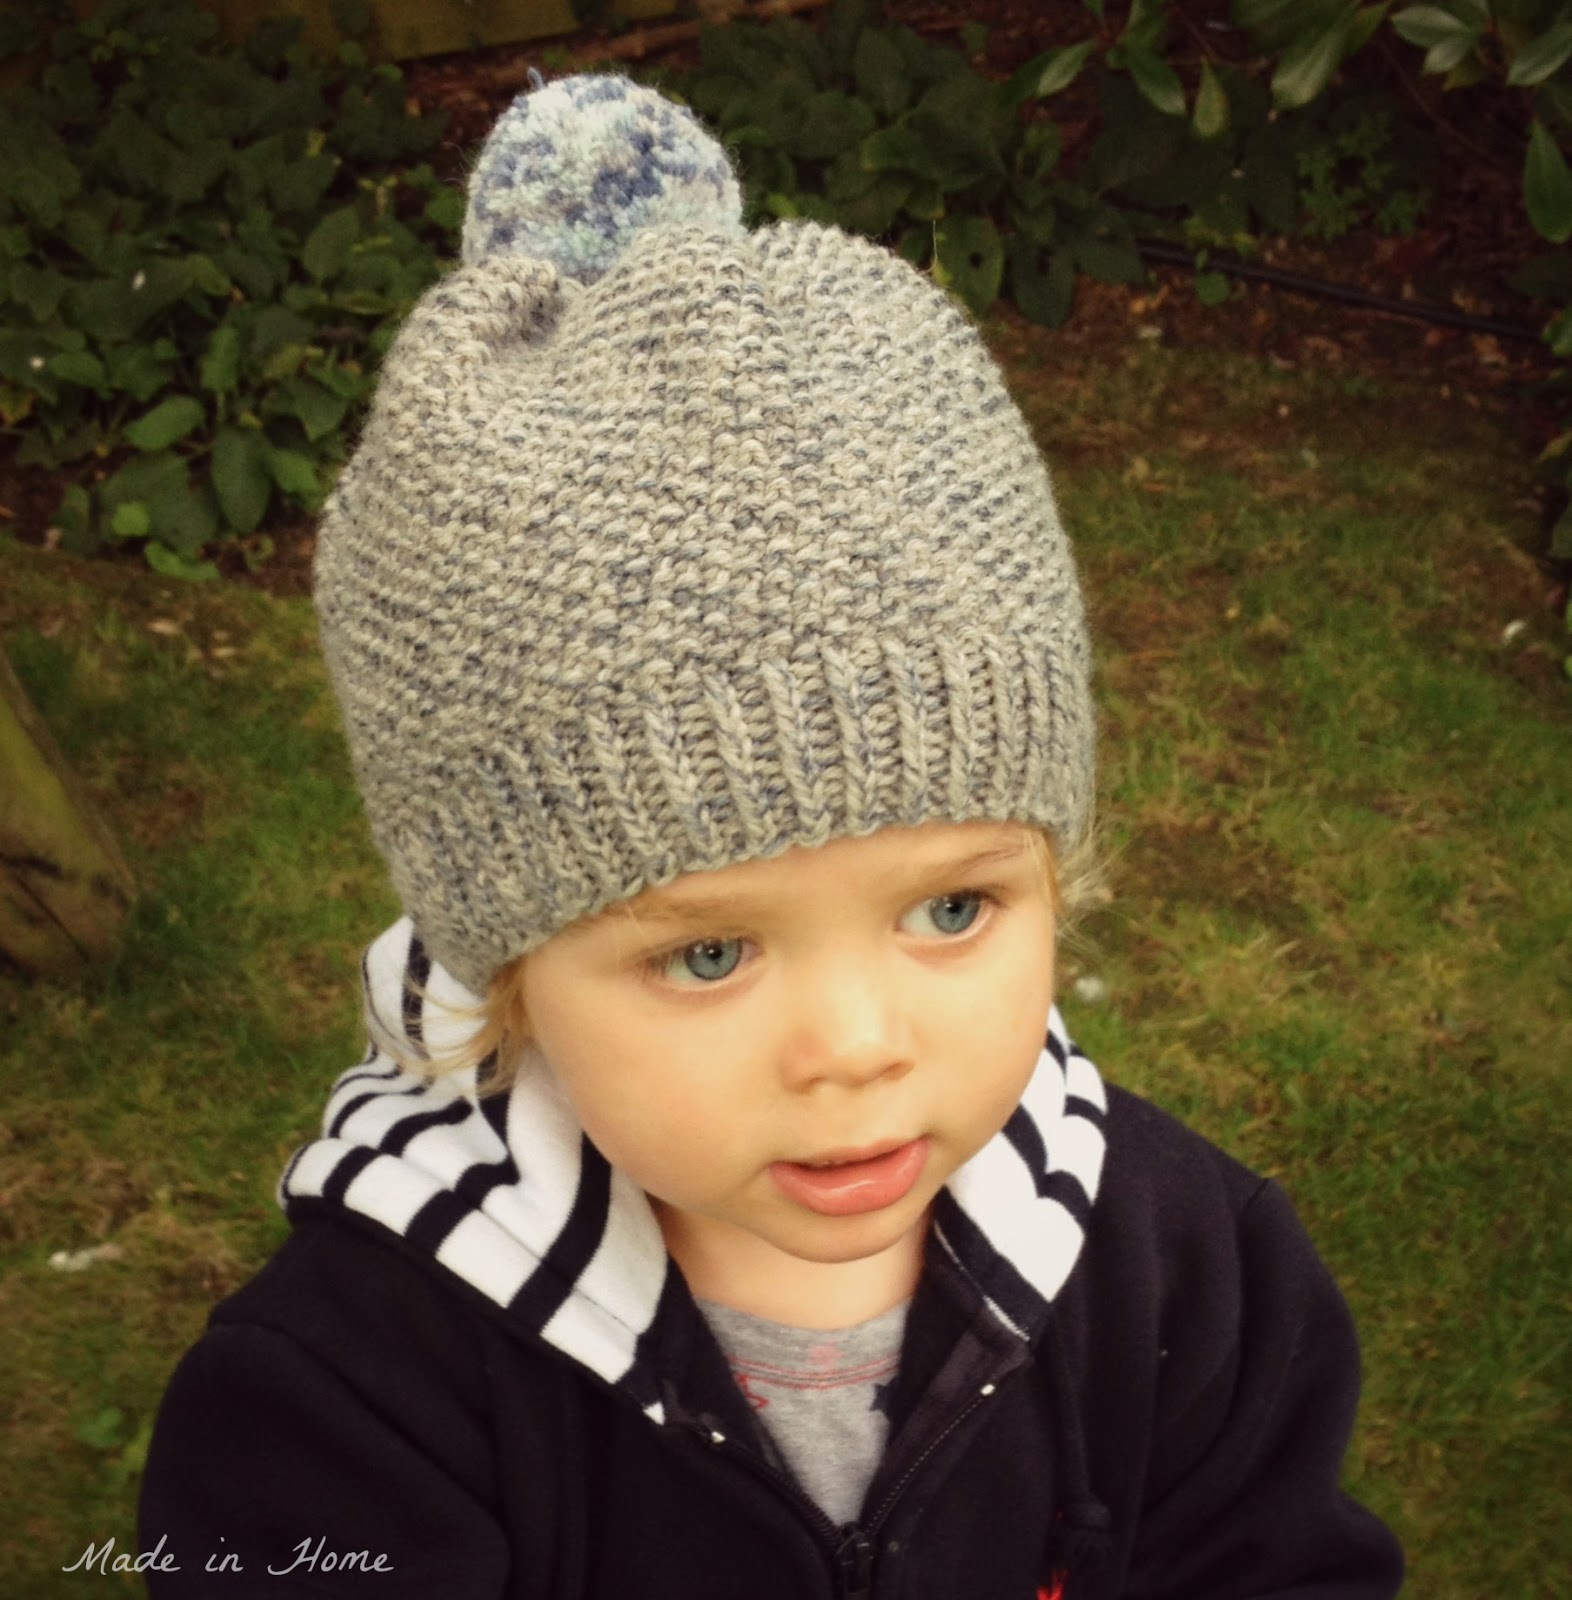 Free Knitting Patterns For Toddlers Beanies : Made in Home: Toddler Pompom Beanie Hat A free pattern {Knitting}